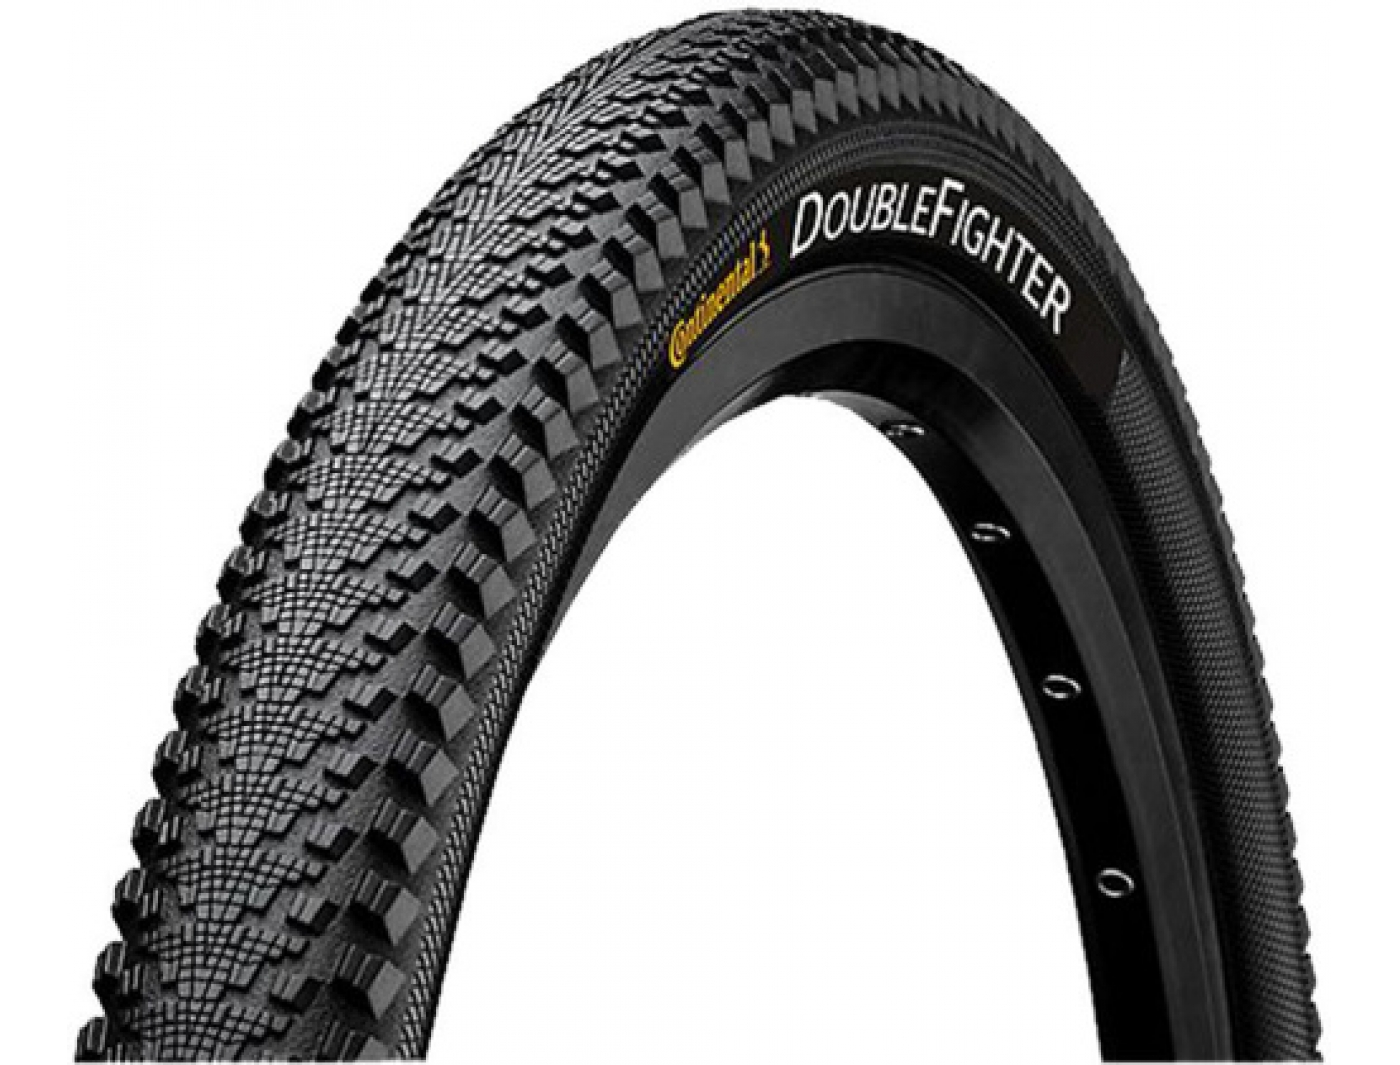 Покрышка 700x35mm  Continental Double Fighter 3 3/180Tpi 640гр. (01007950000)